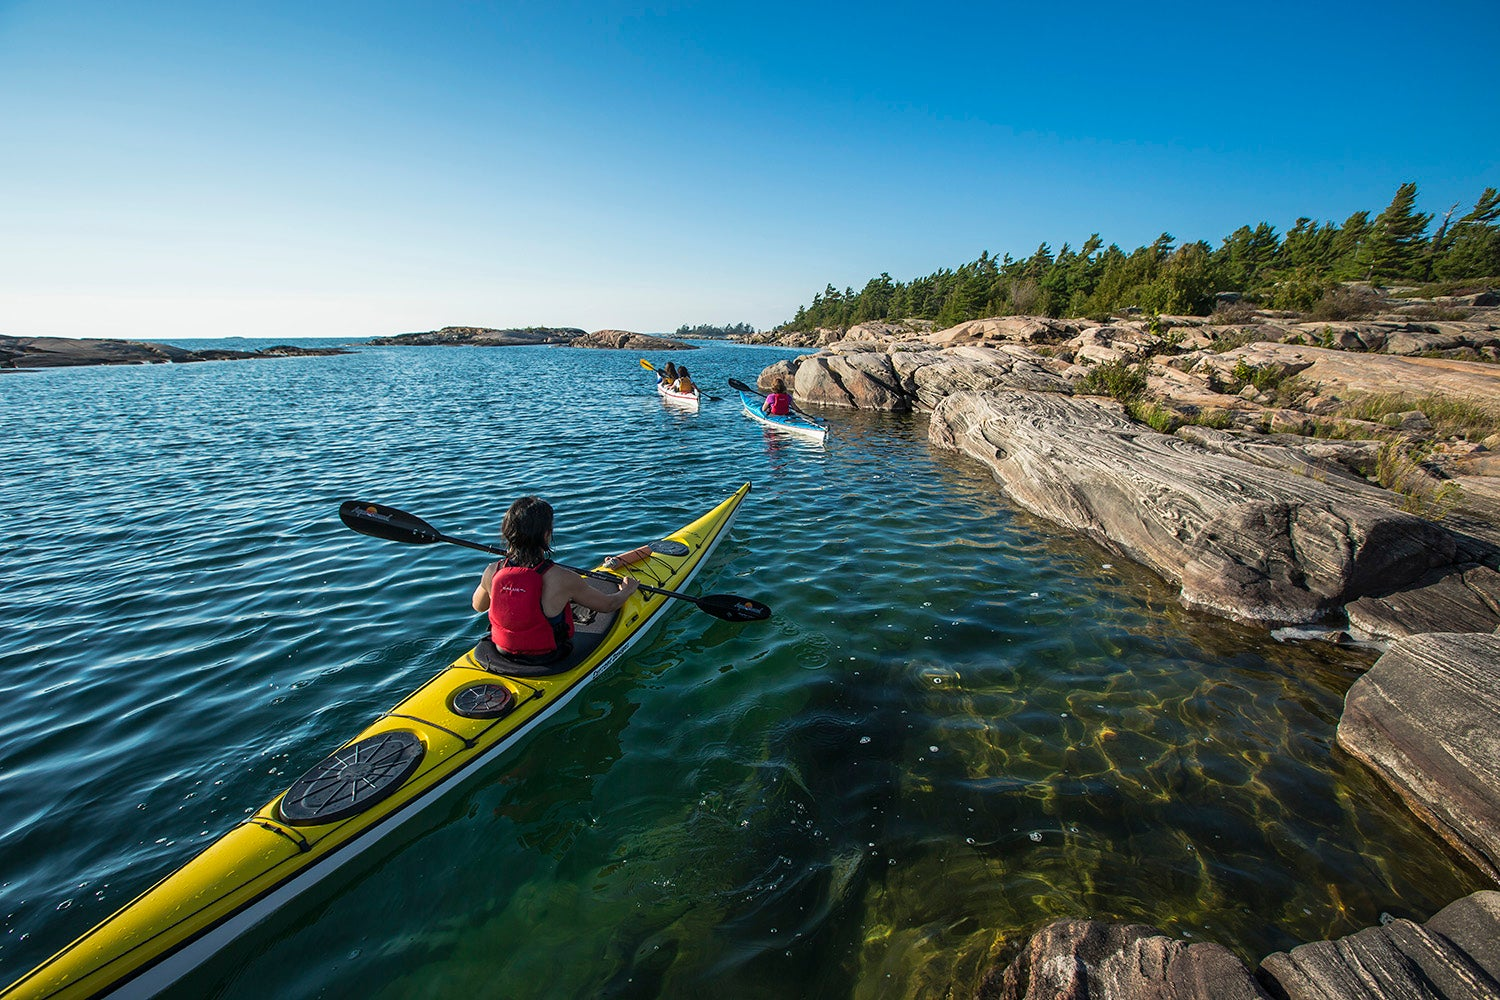 Settin' off from the dock of the Bay: Kayaking in Georgian Bay